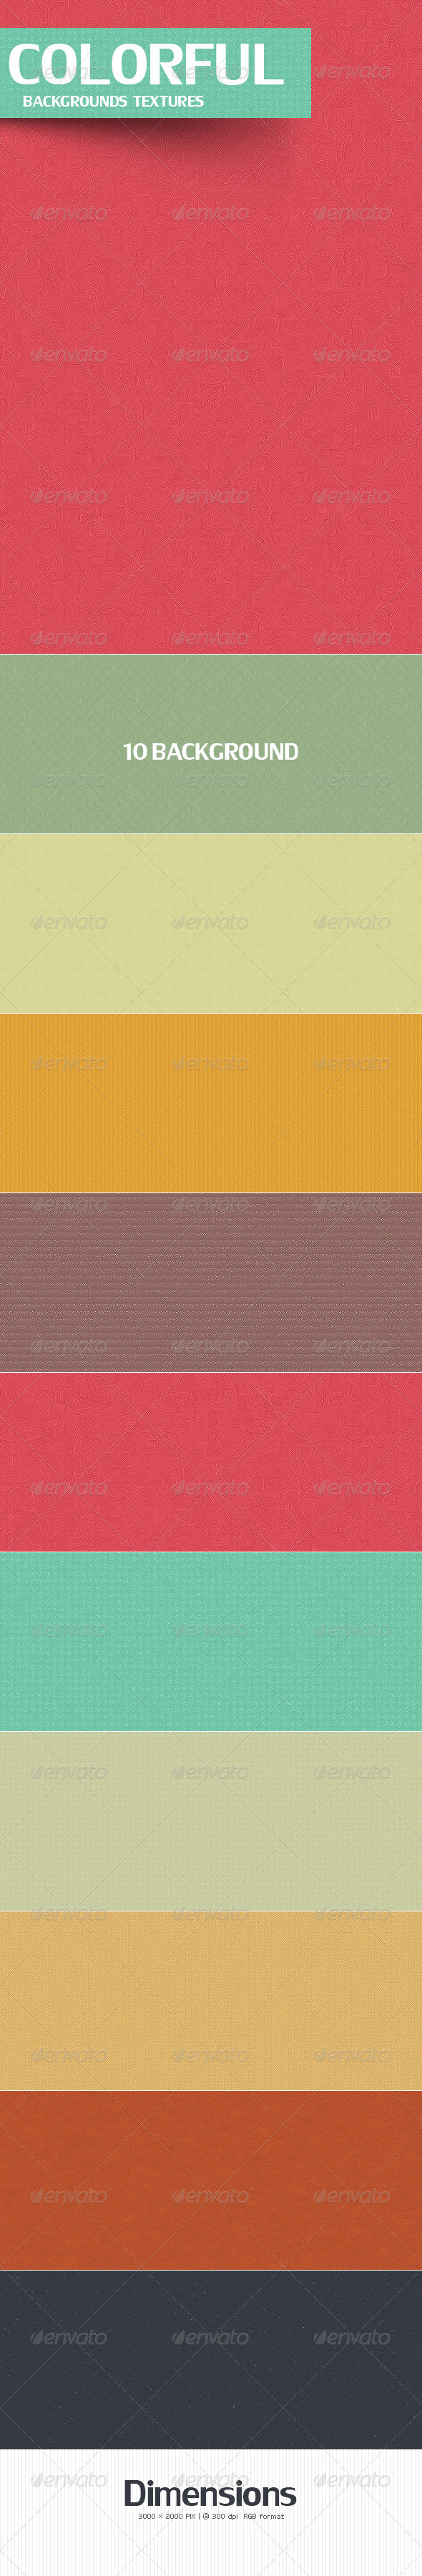 GraphicRiver Colorful Backgrounds Textures 4485347